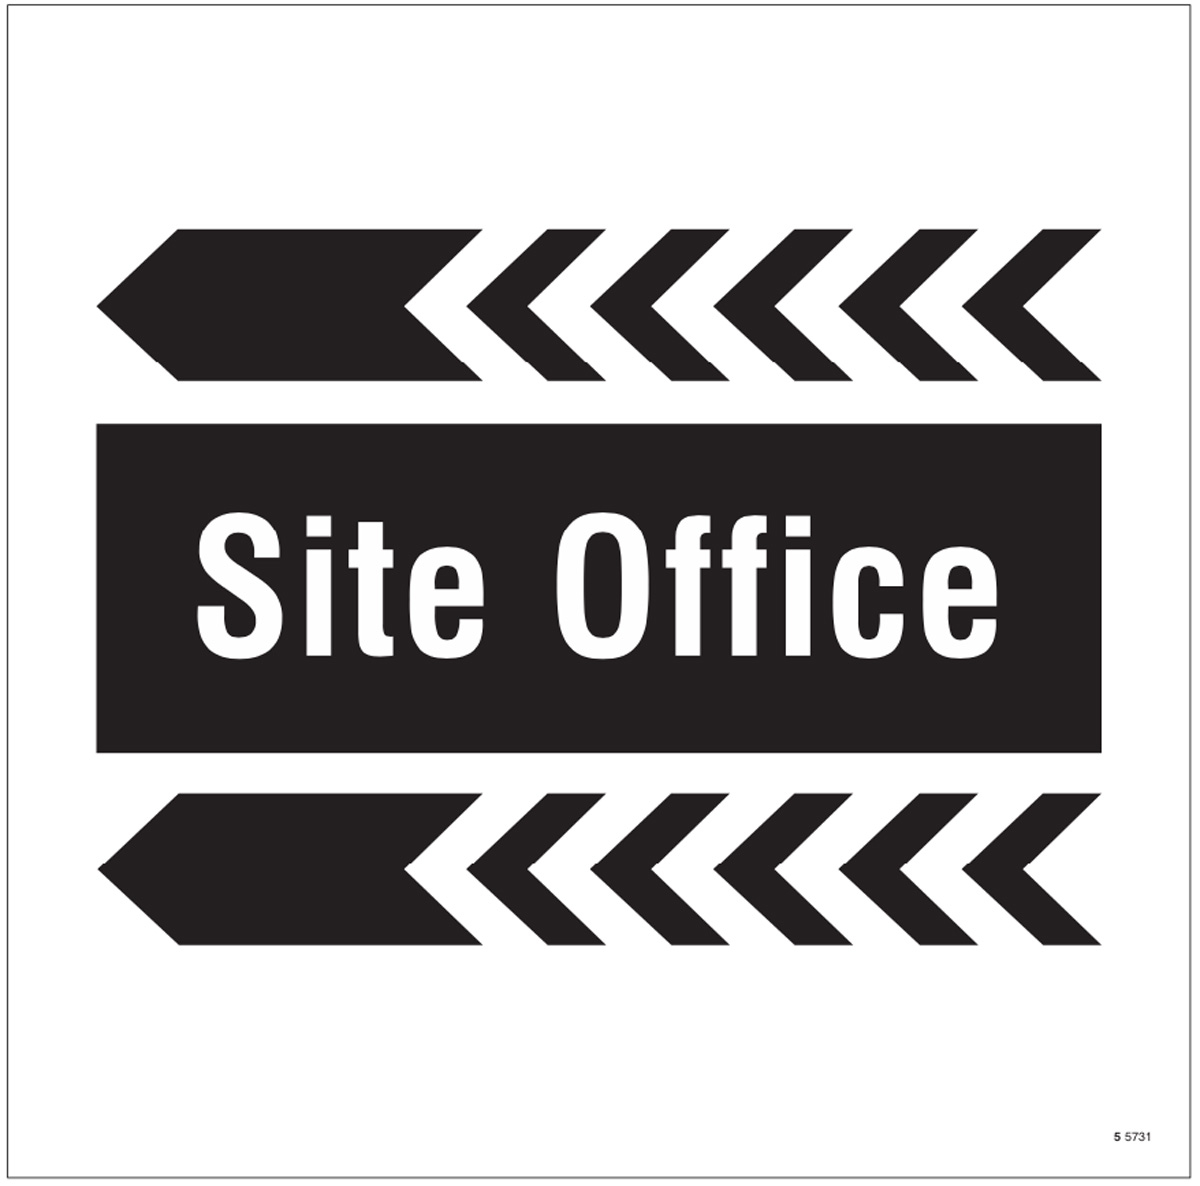 Site office, arrow left site saver sign 400x400mm